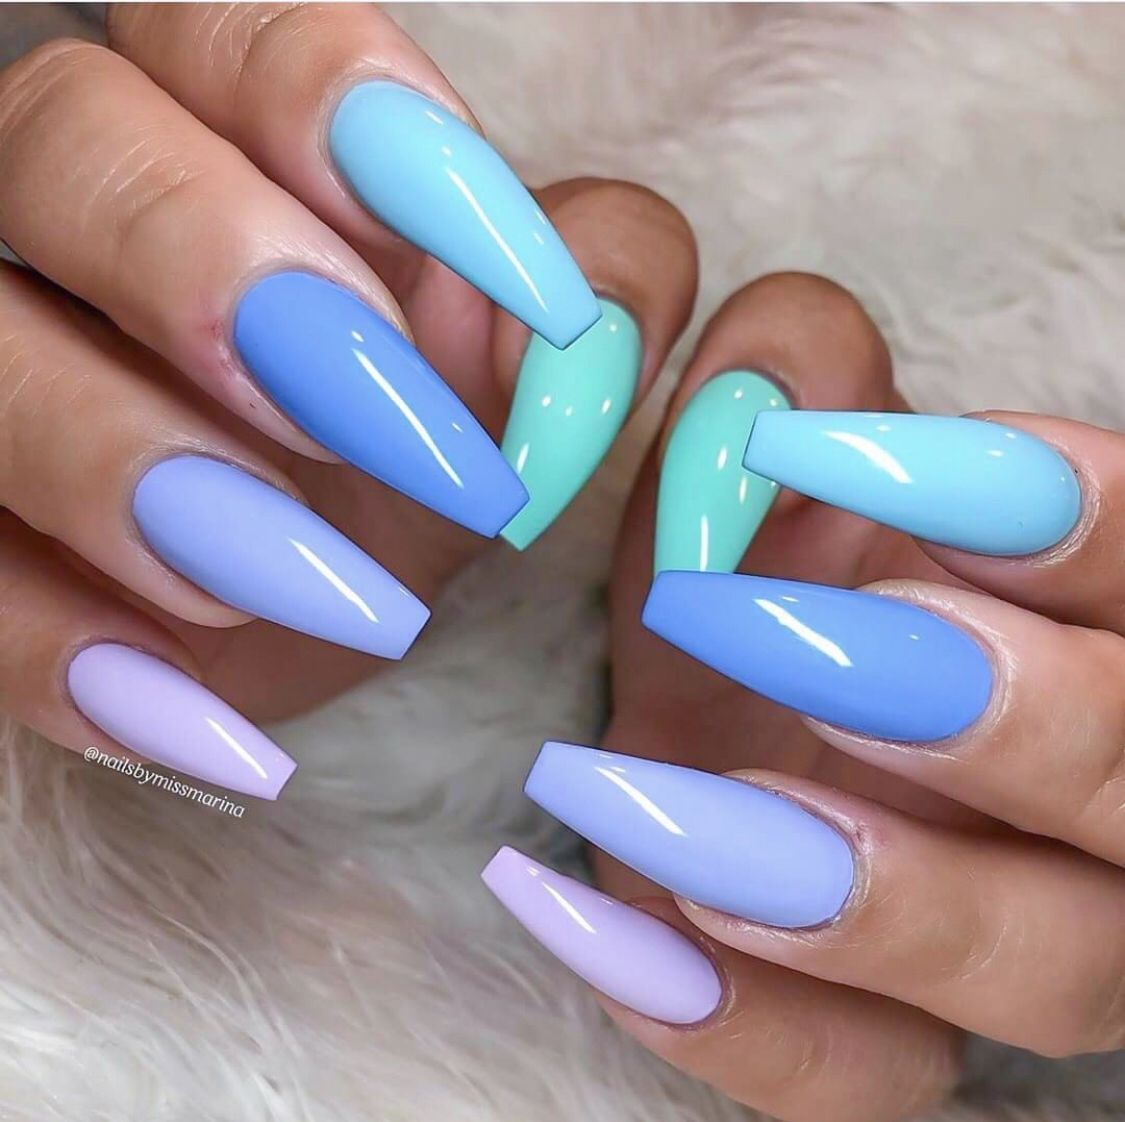 Spring Tropical Nails Summer Best Acrylic Nails Summer Acrylic Nails Coffin Nails Long